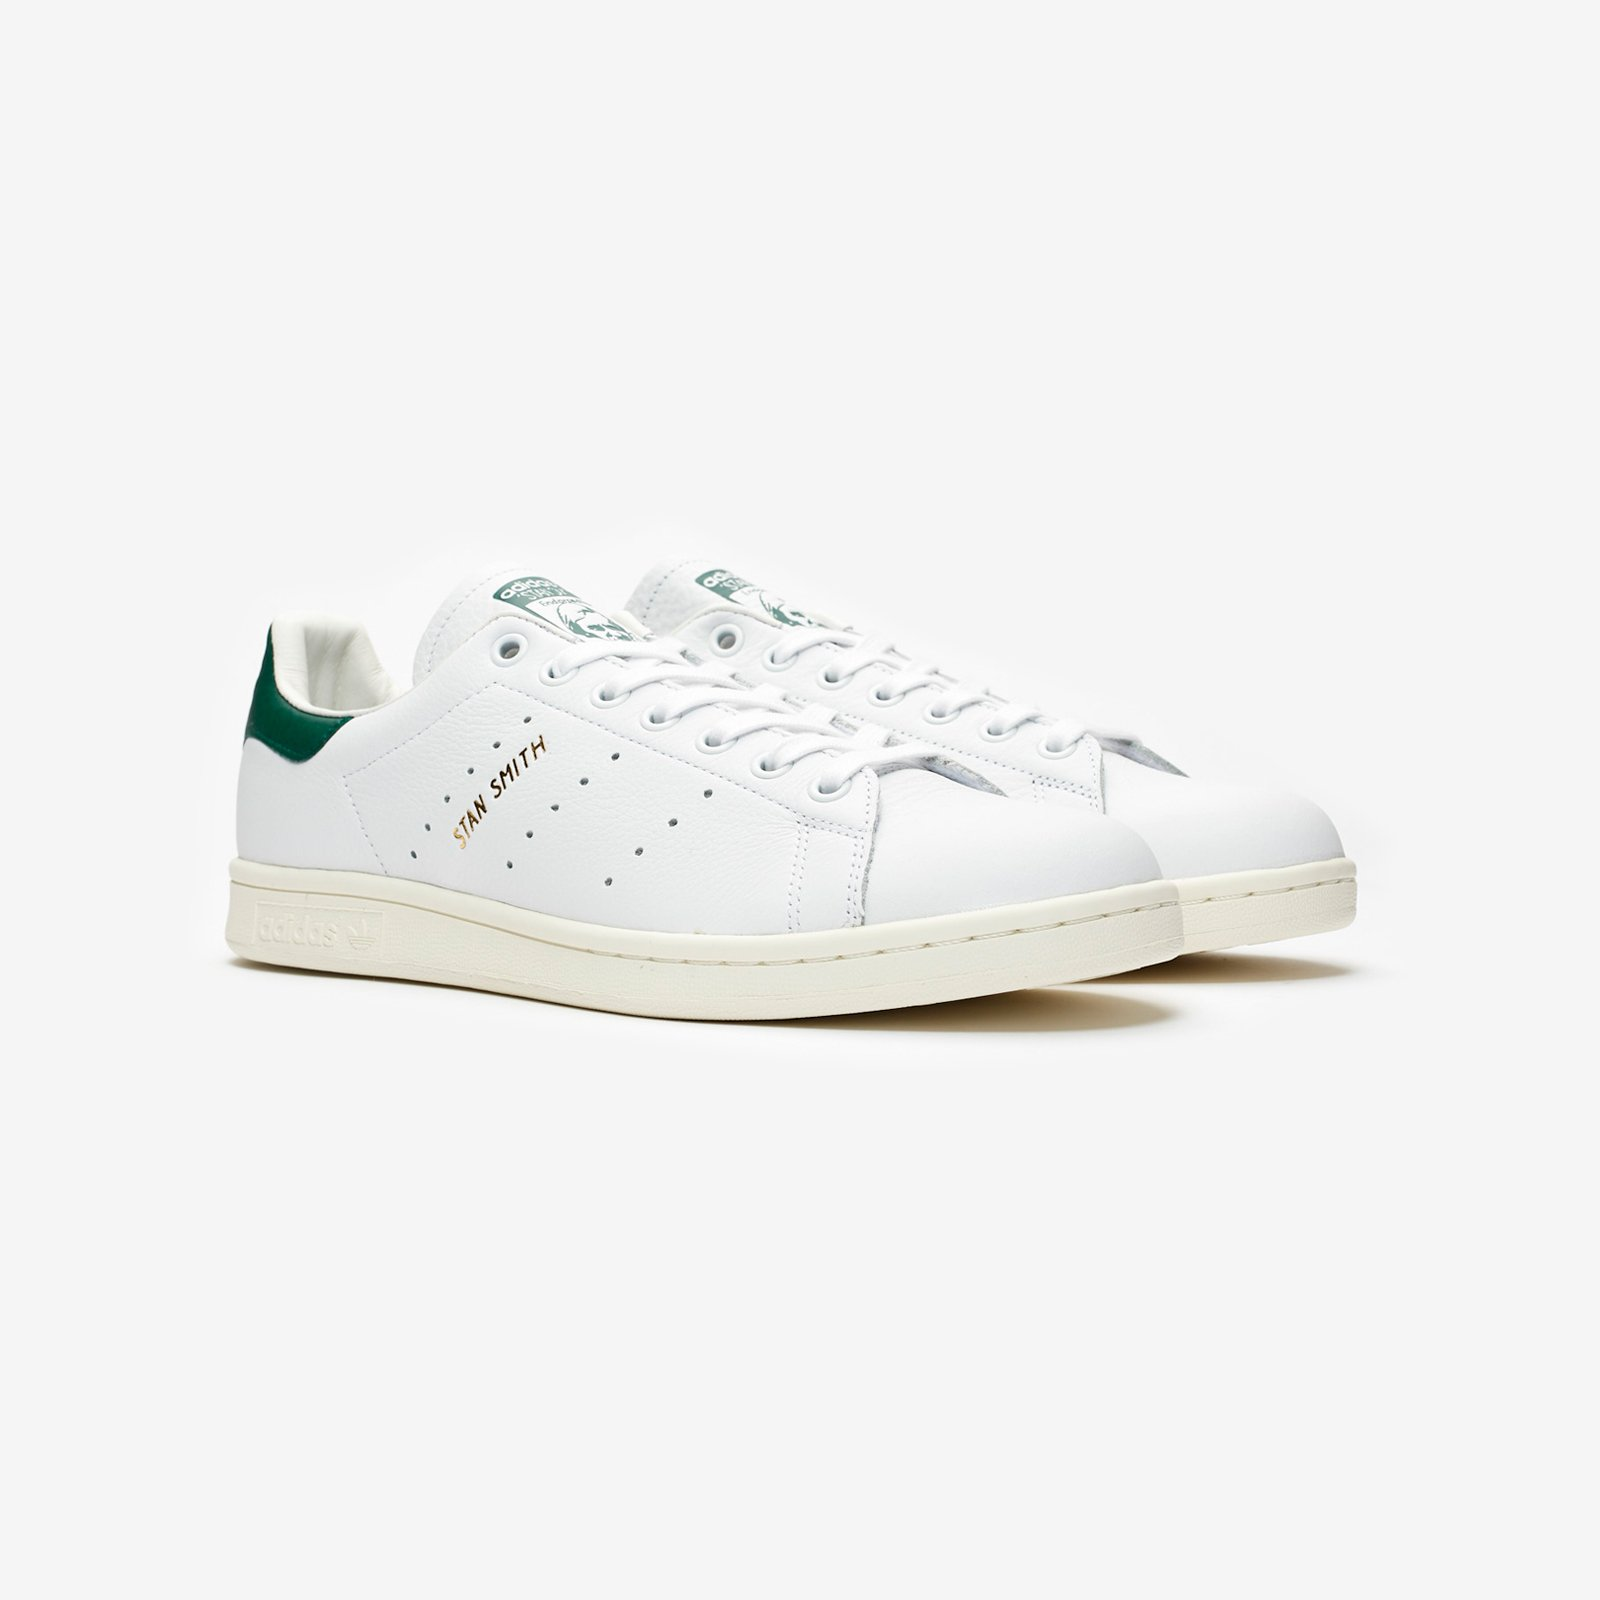 reputable site 73f50 8308f adidas Stan Smith - Cq2871 - Sneakersnstuff | sneakers ...